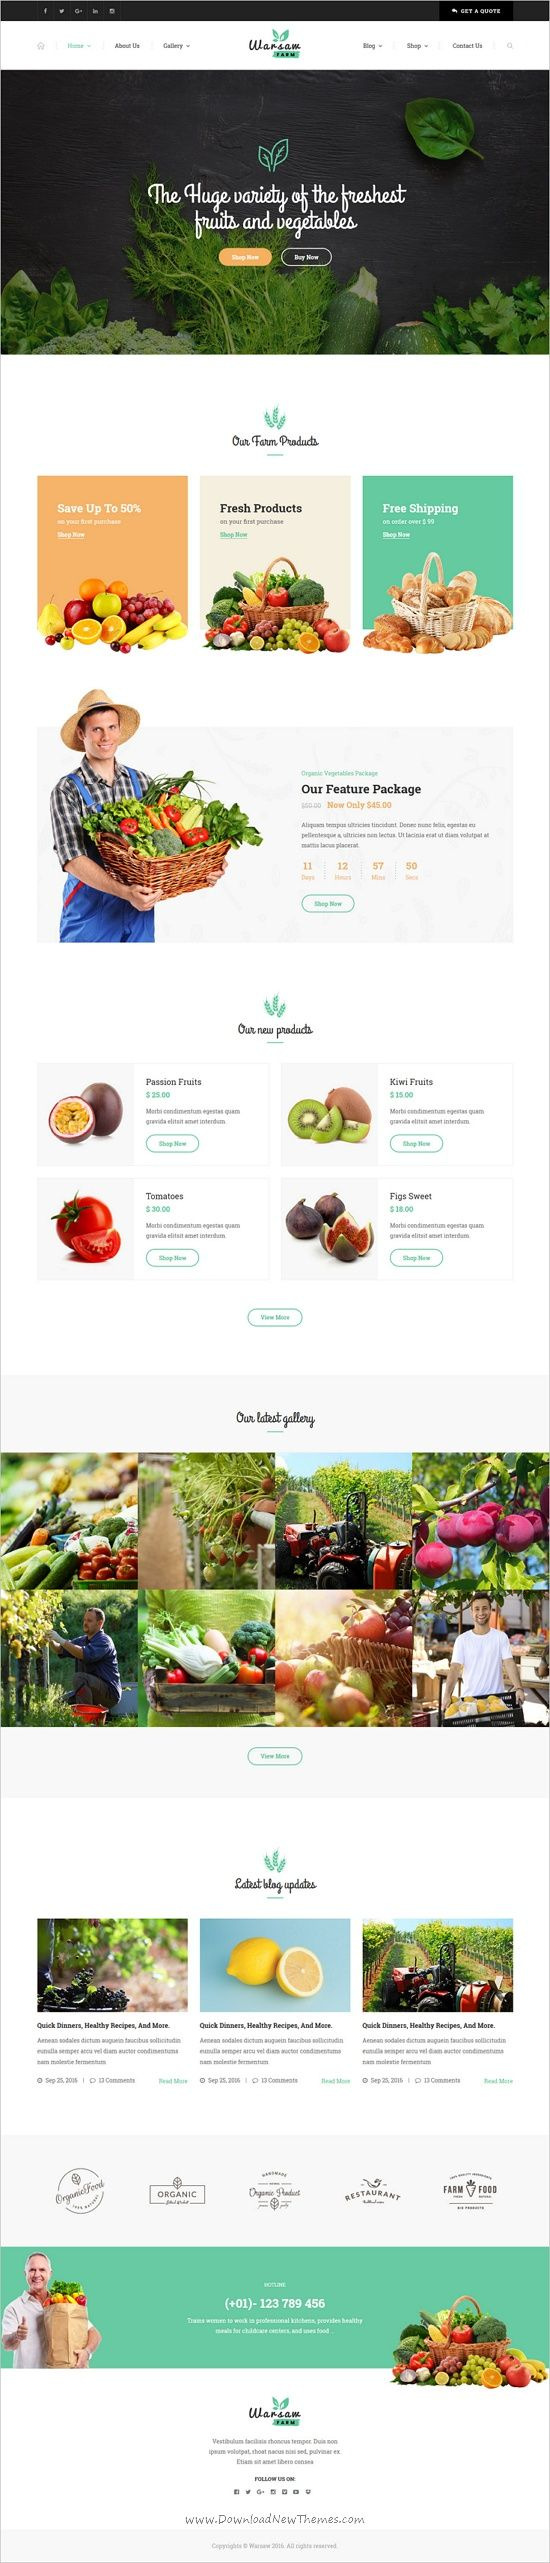 Warsaw is a wonderful responsive #HTML bootstrap template for #webdev Agricultural Business, #Farm, Organic #Food Product shop, Bakery, Organic Beauty Stores, Shops of Natural Cosmetics websites download now➩ https://themeforest.net/item/warsaw-organic-food-agriculture-farm-services-and-beauty-products-html-template/19177557?ref=Datasata